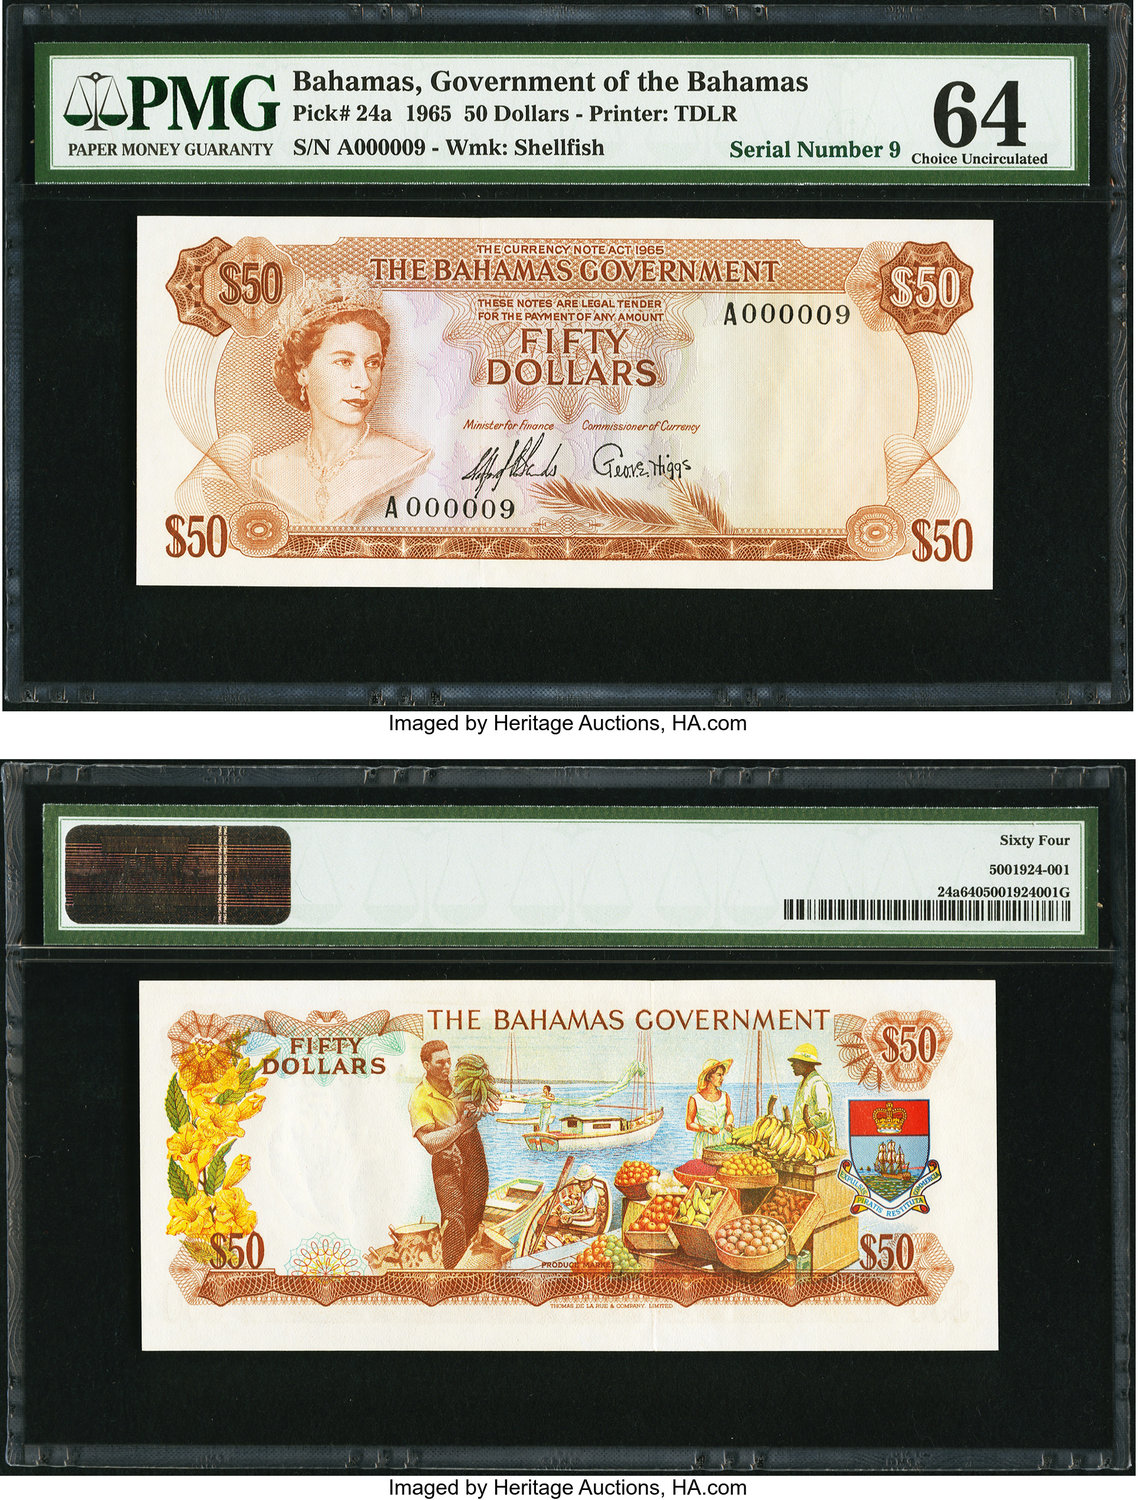 World Currency Bahamas Government 50 1965 Pick 24a Low Serial Number 9 A Lovely Well Preserved Example Of This